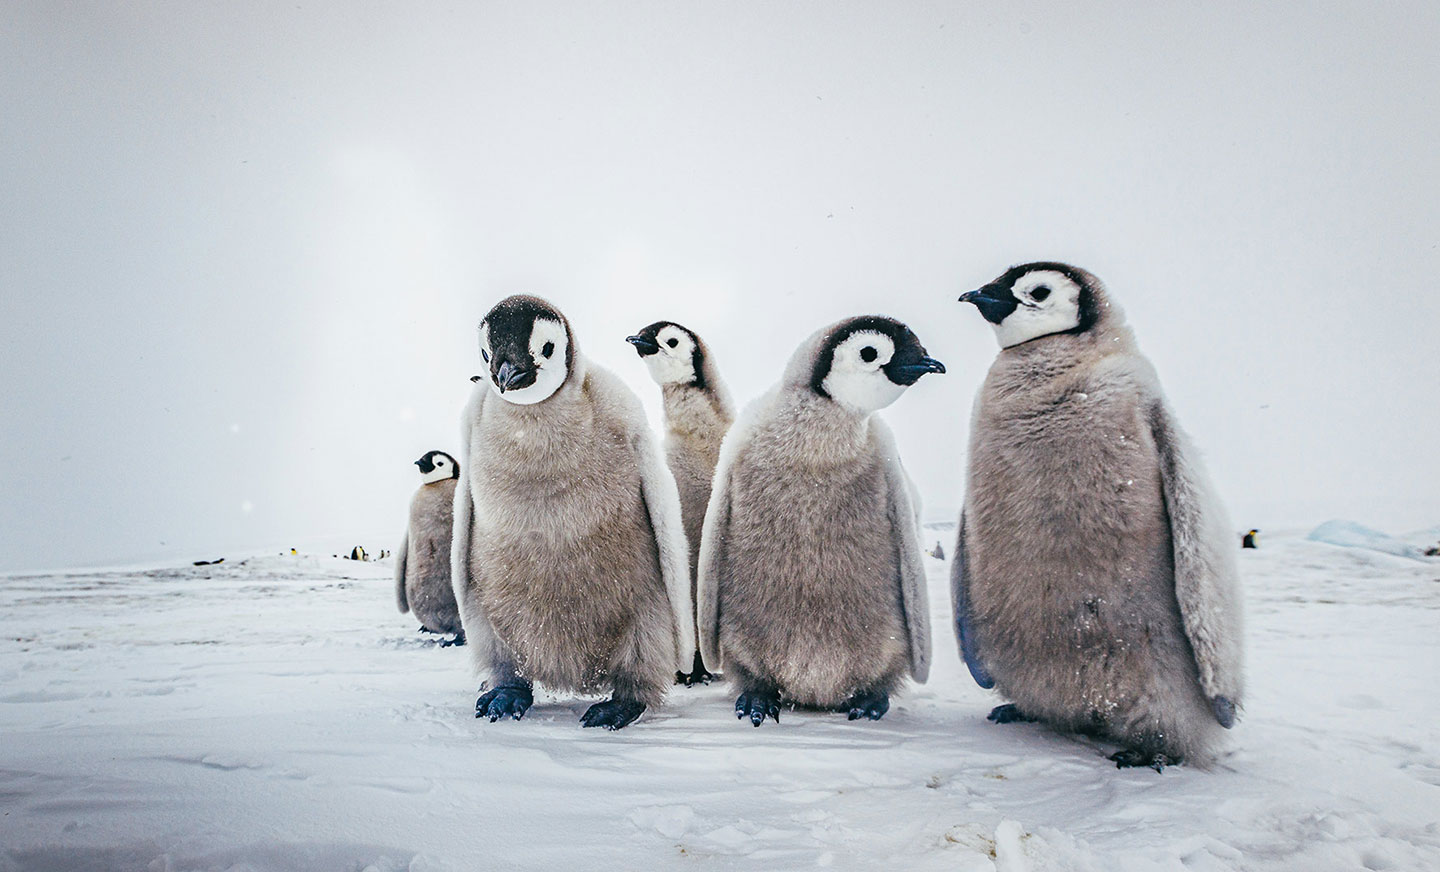 How to see penguins in Antarctica